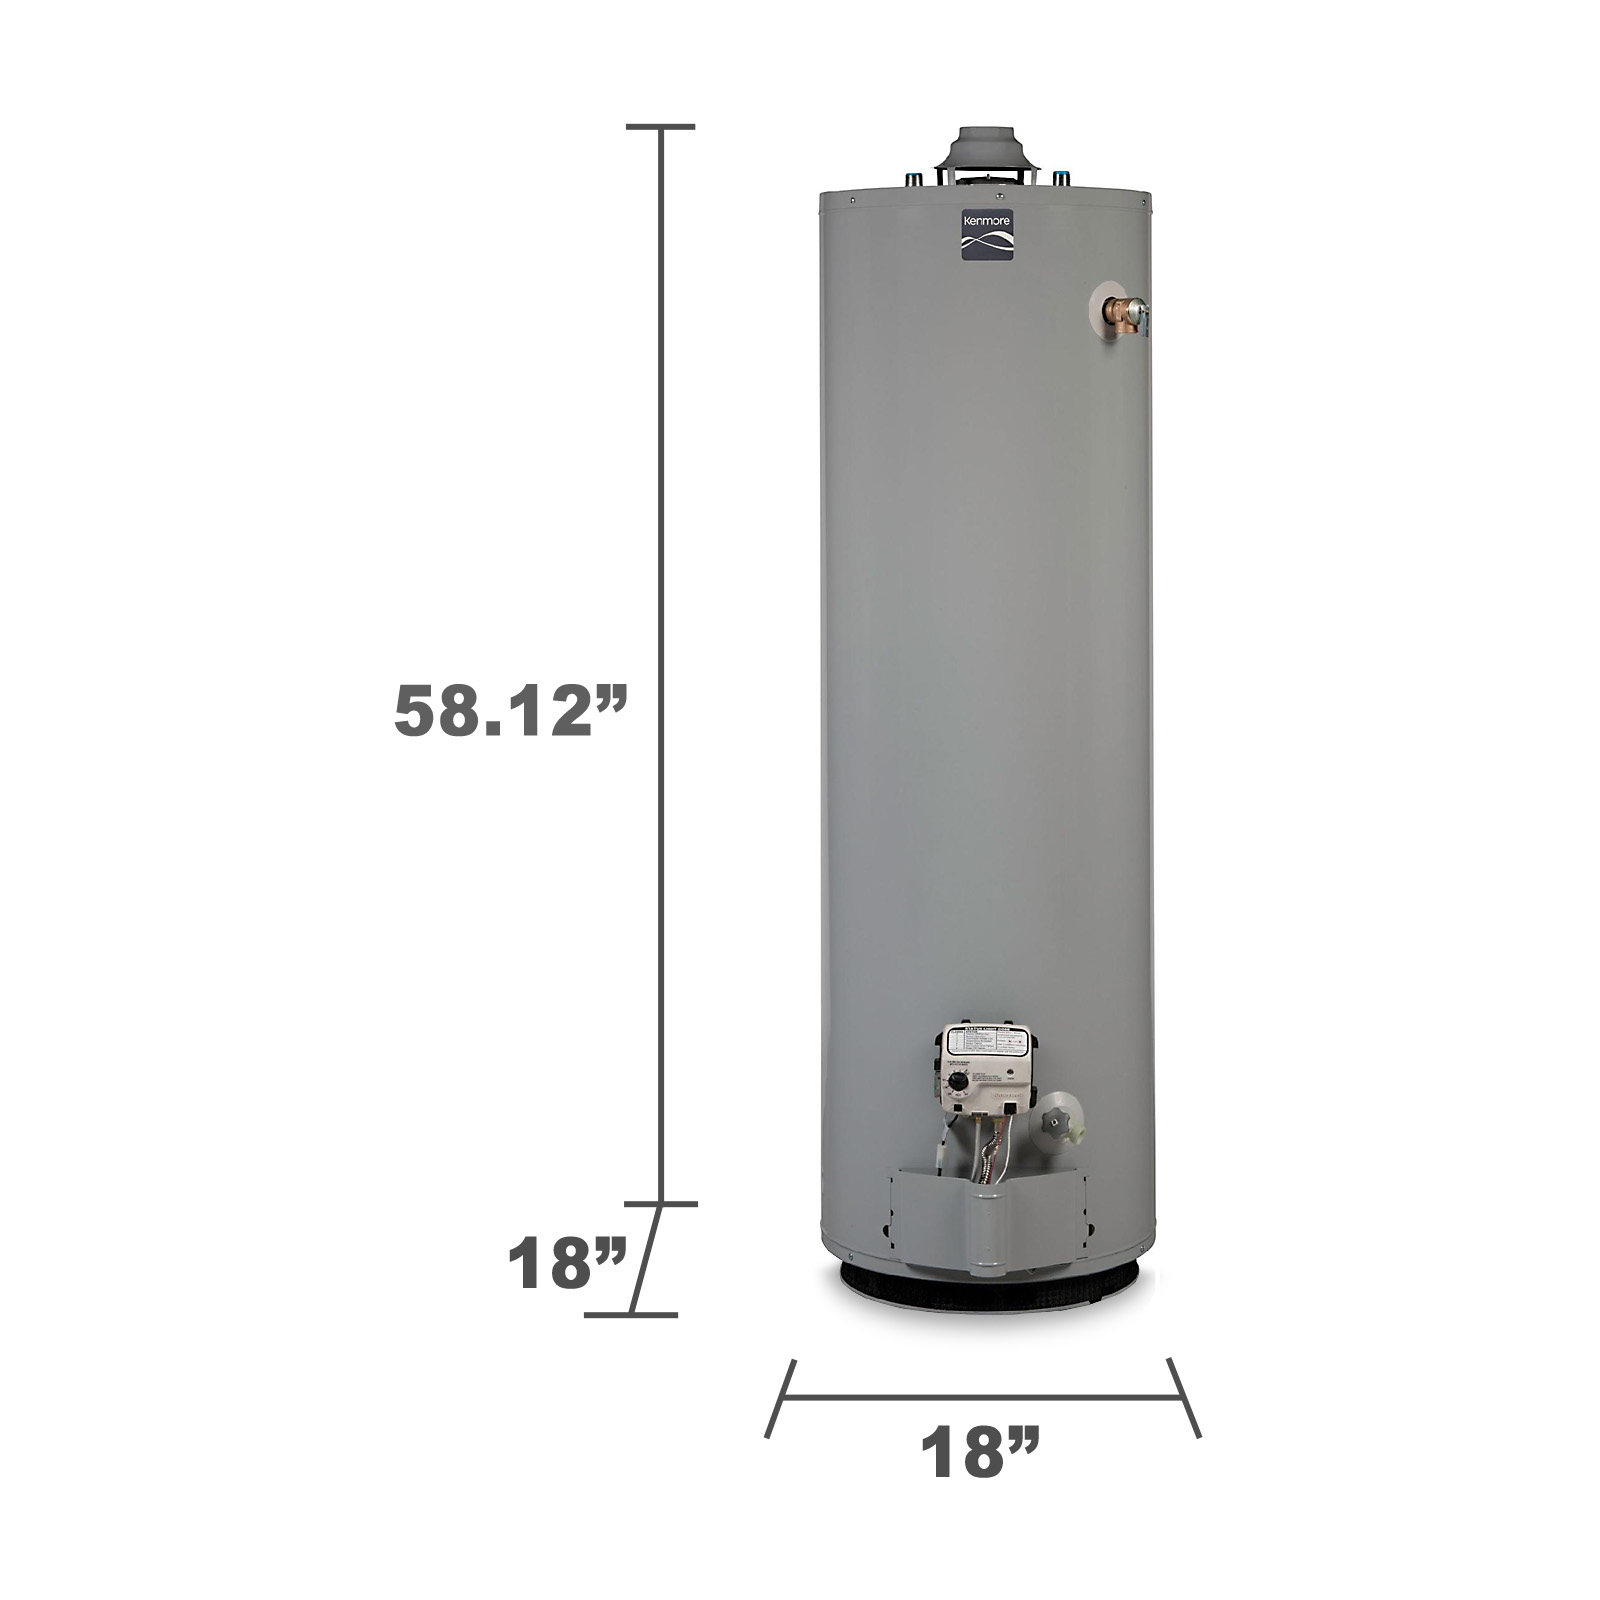 Kenmore 40 gal. Liquid Propane Water Heater - Limited Availability